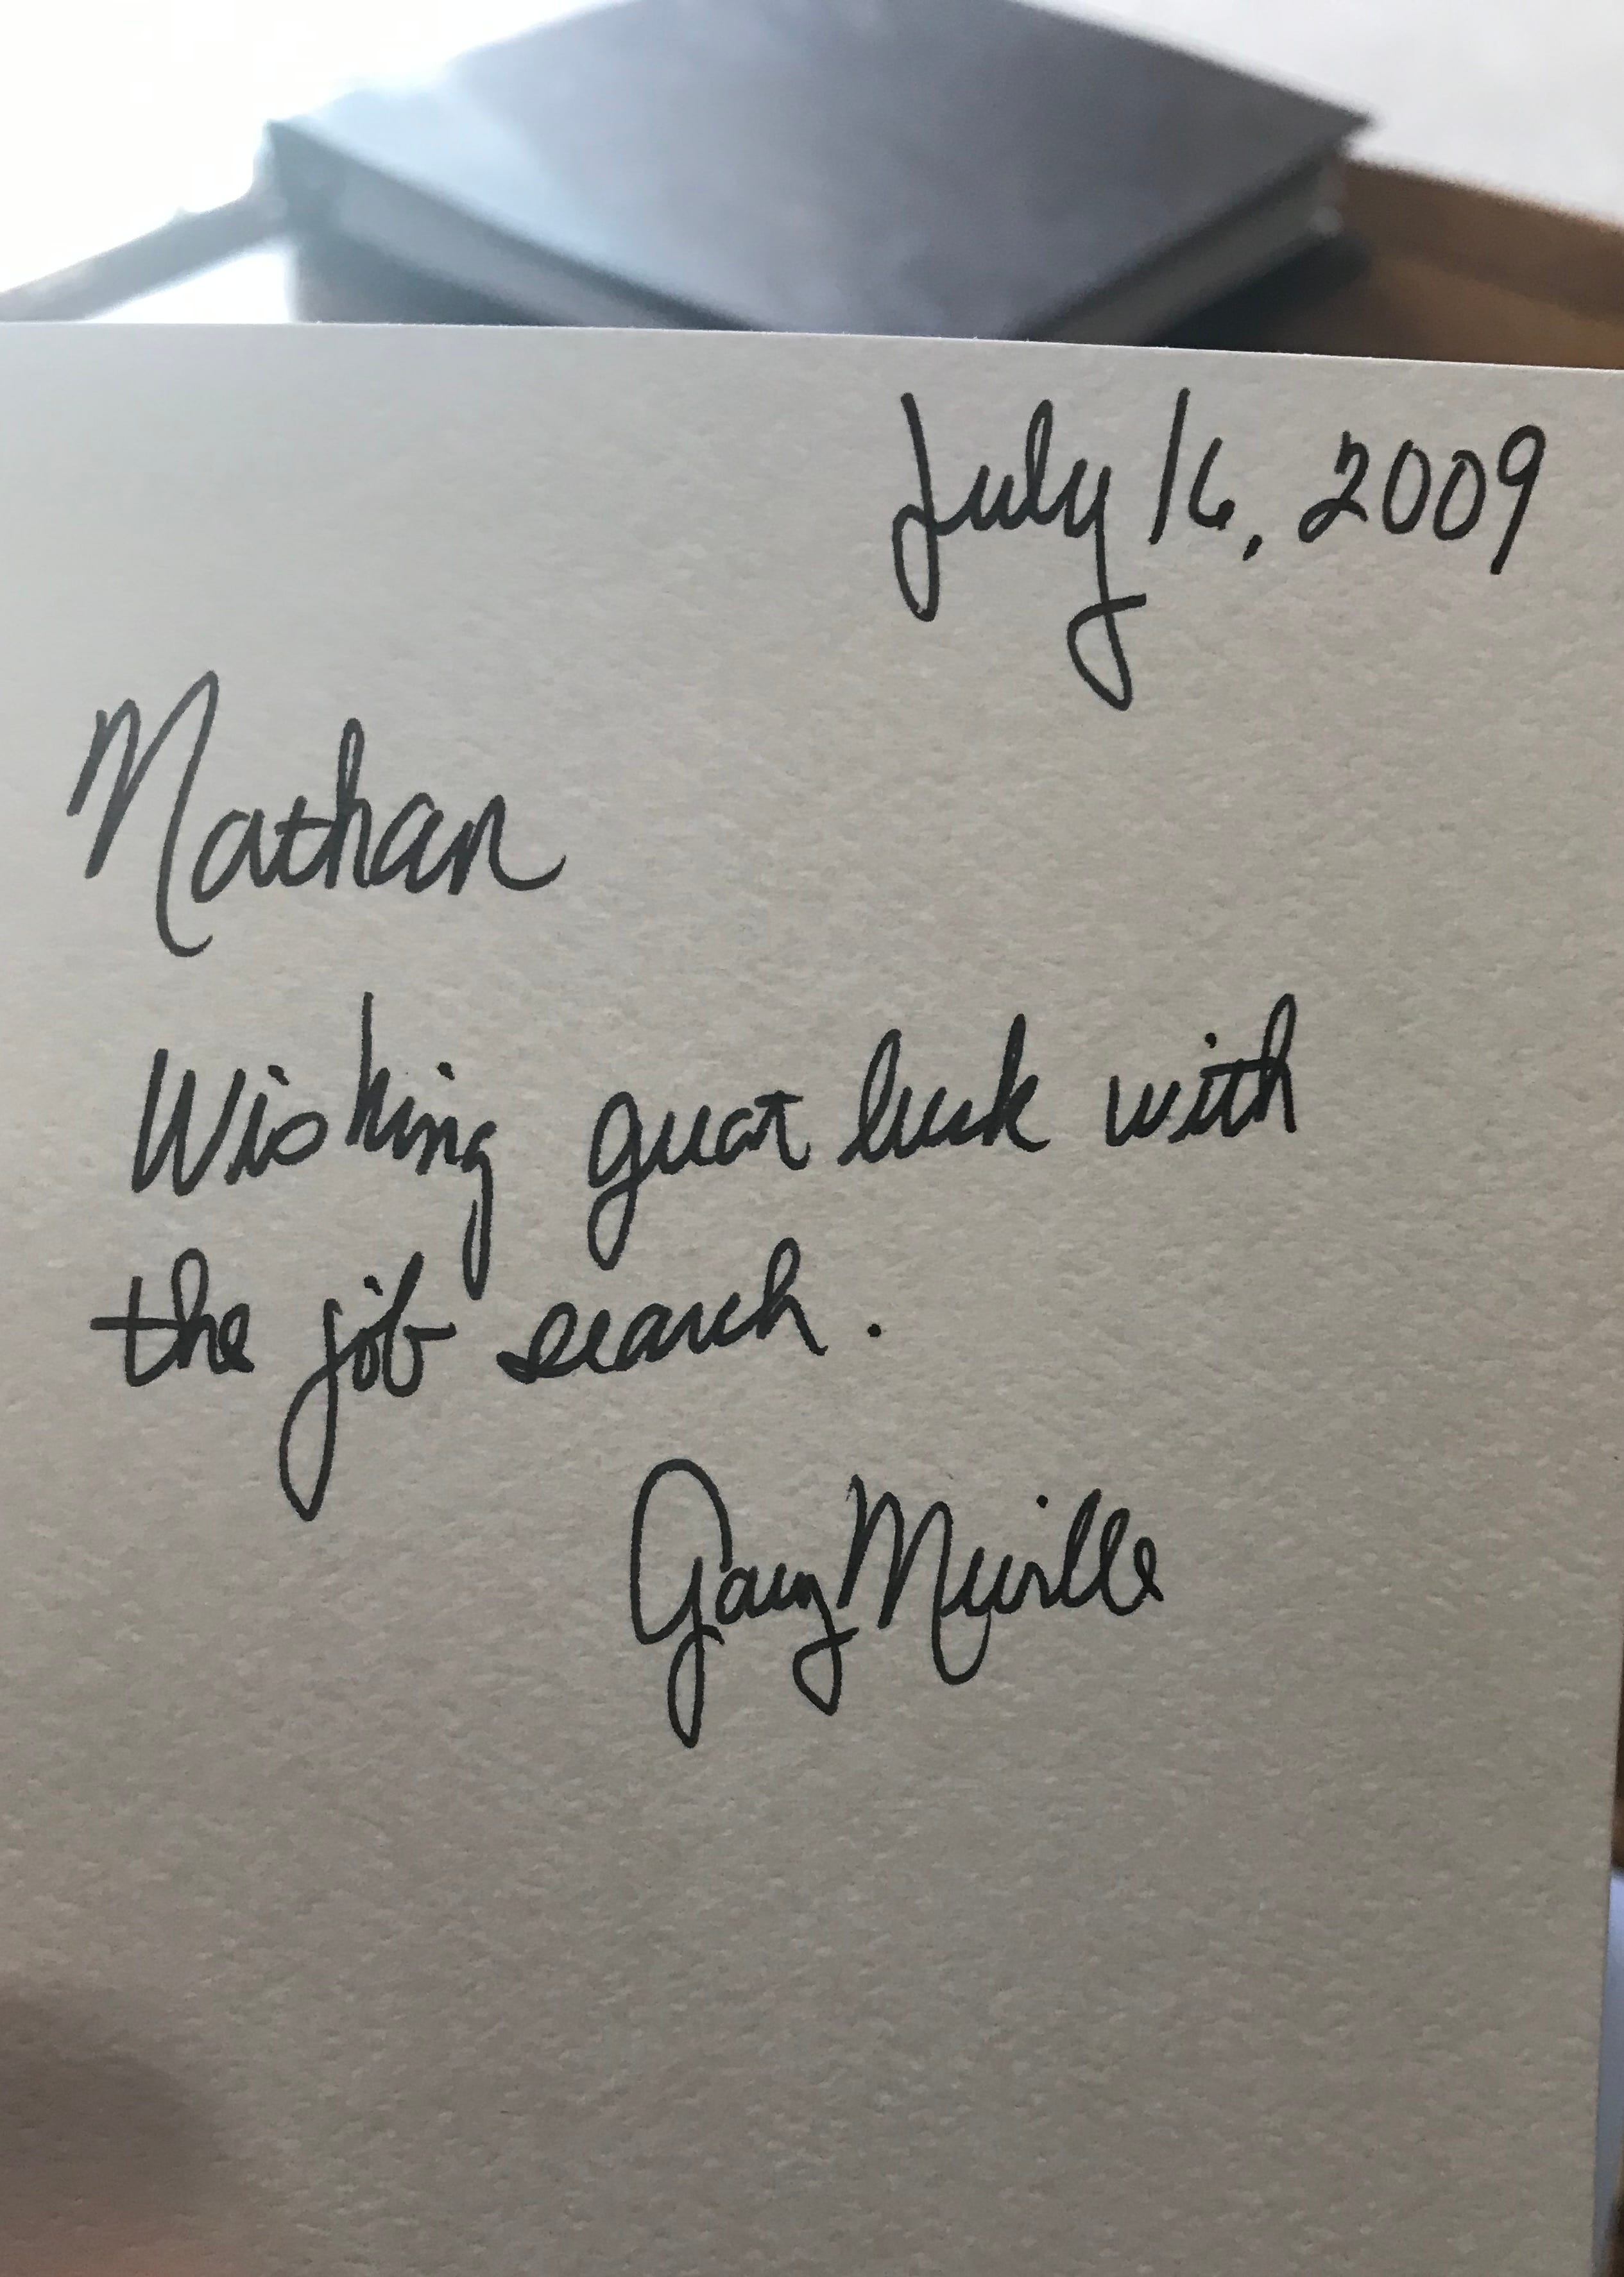 A card that accompanied a $3,500 check to Nate Lindstrom from then-Abbot Gary Neville of St. Norbert Abbey in De Pere.